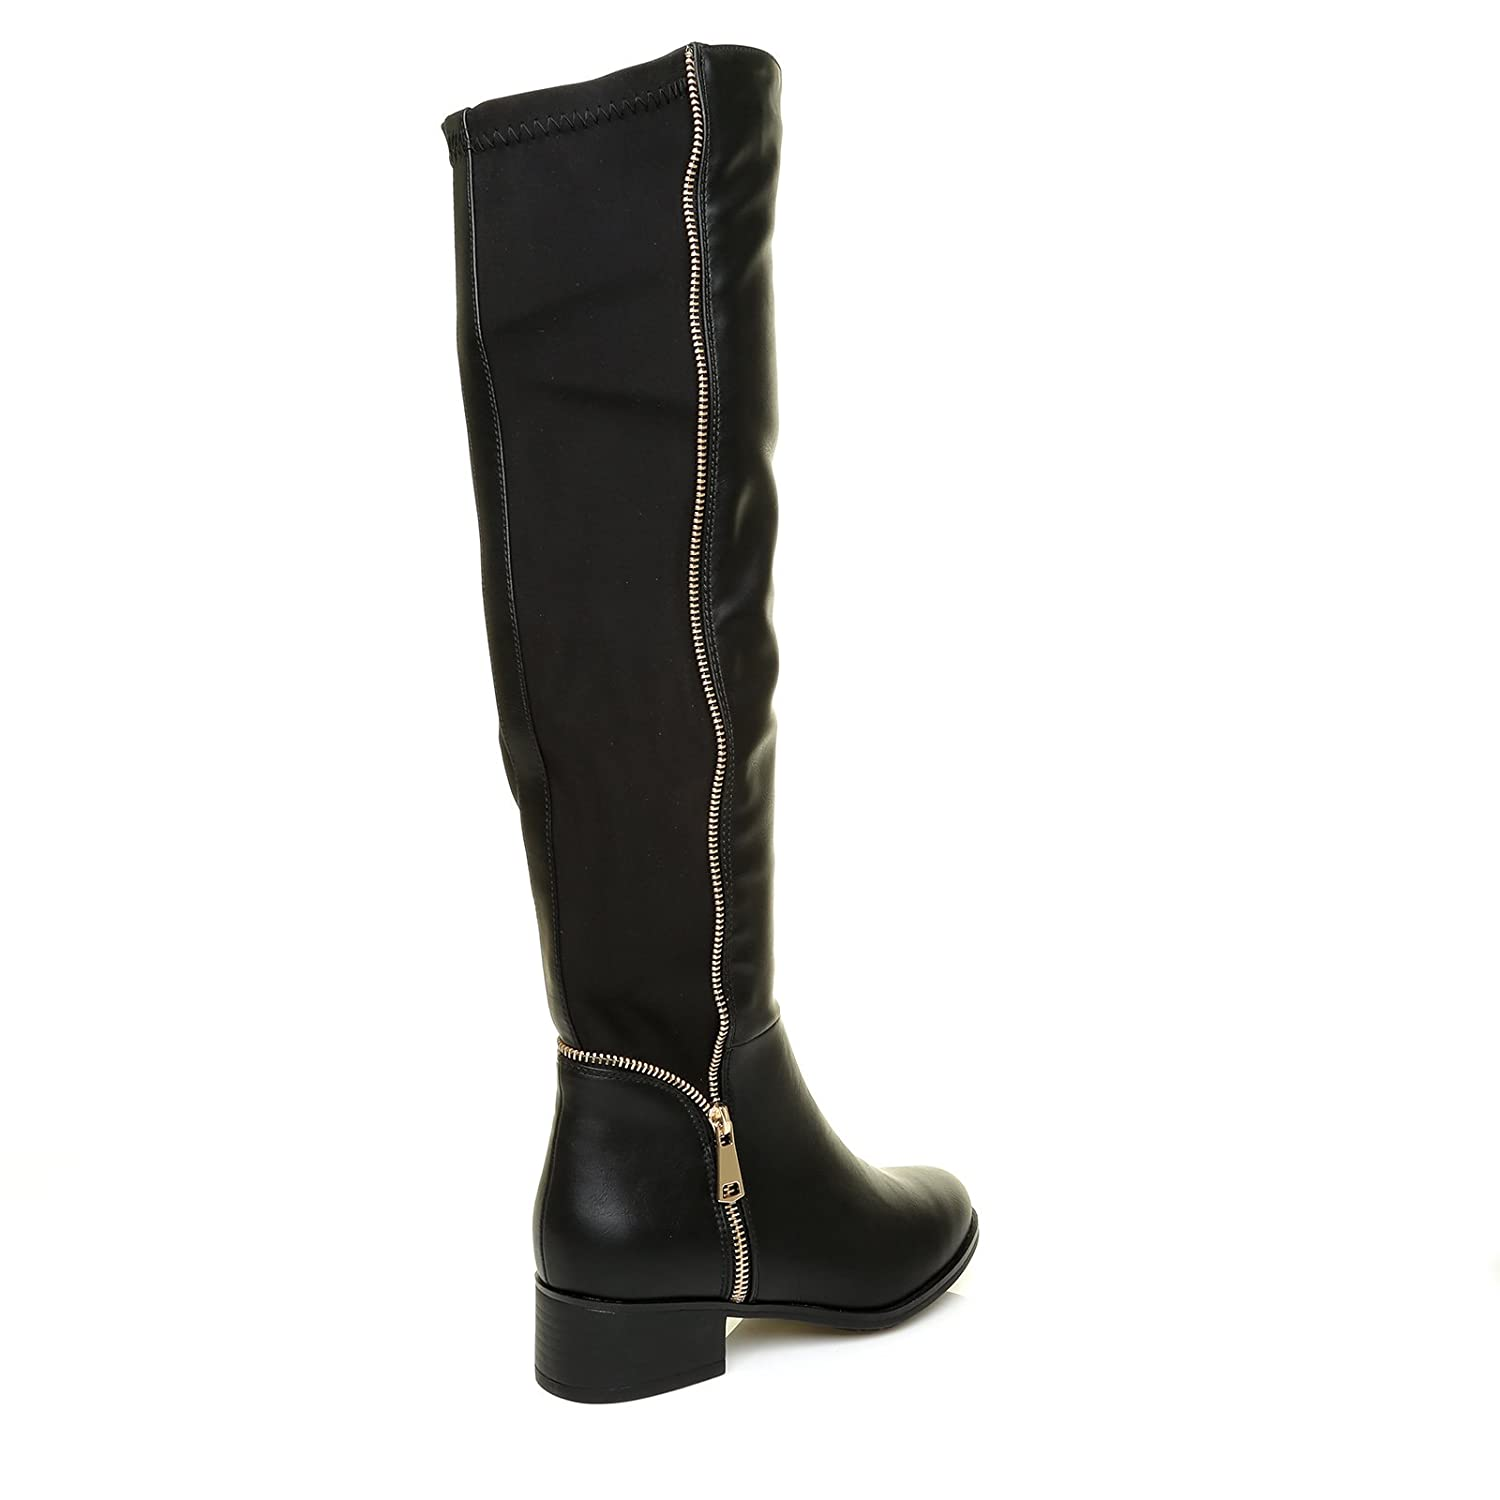 6b491c69ae5a4d ShuWish UK Amber Black PU Leather Elasticated Stretch Riding Boots with  Gold Zip Trim: Amazon.co.uk: Shoes & Bags